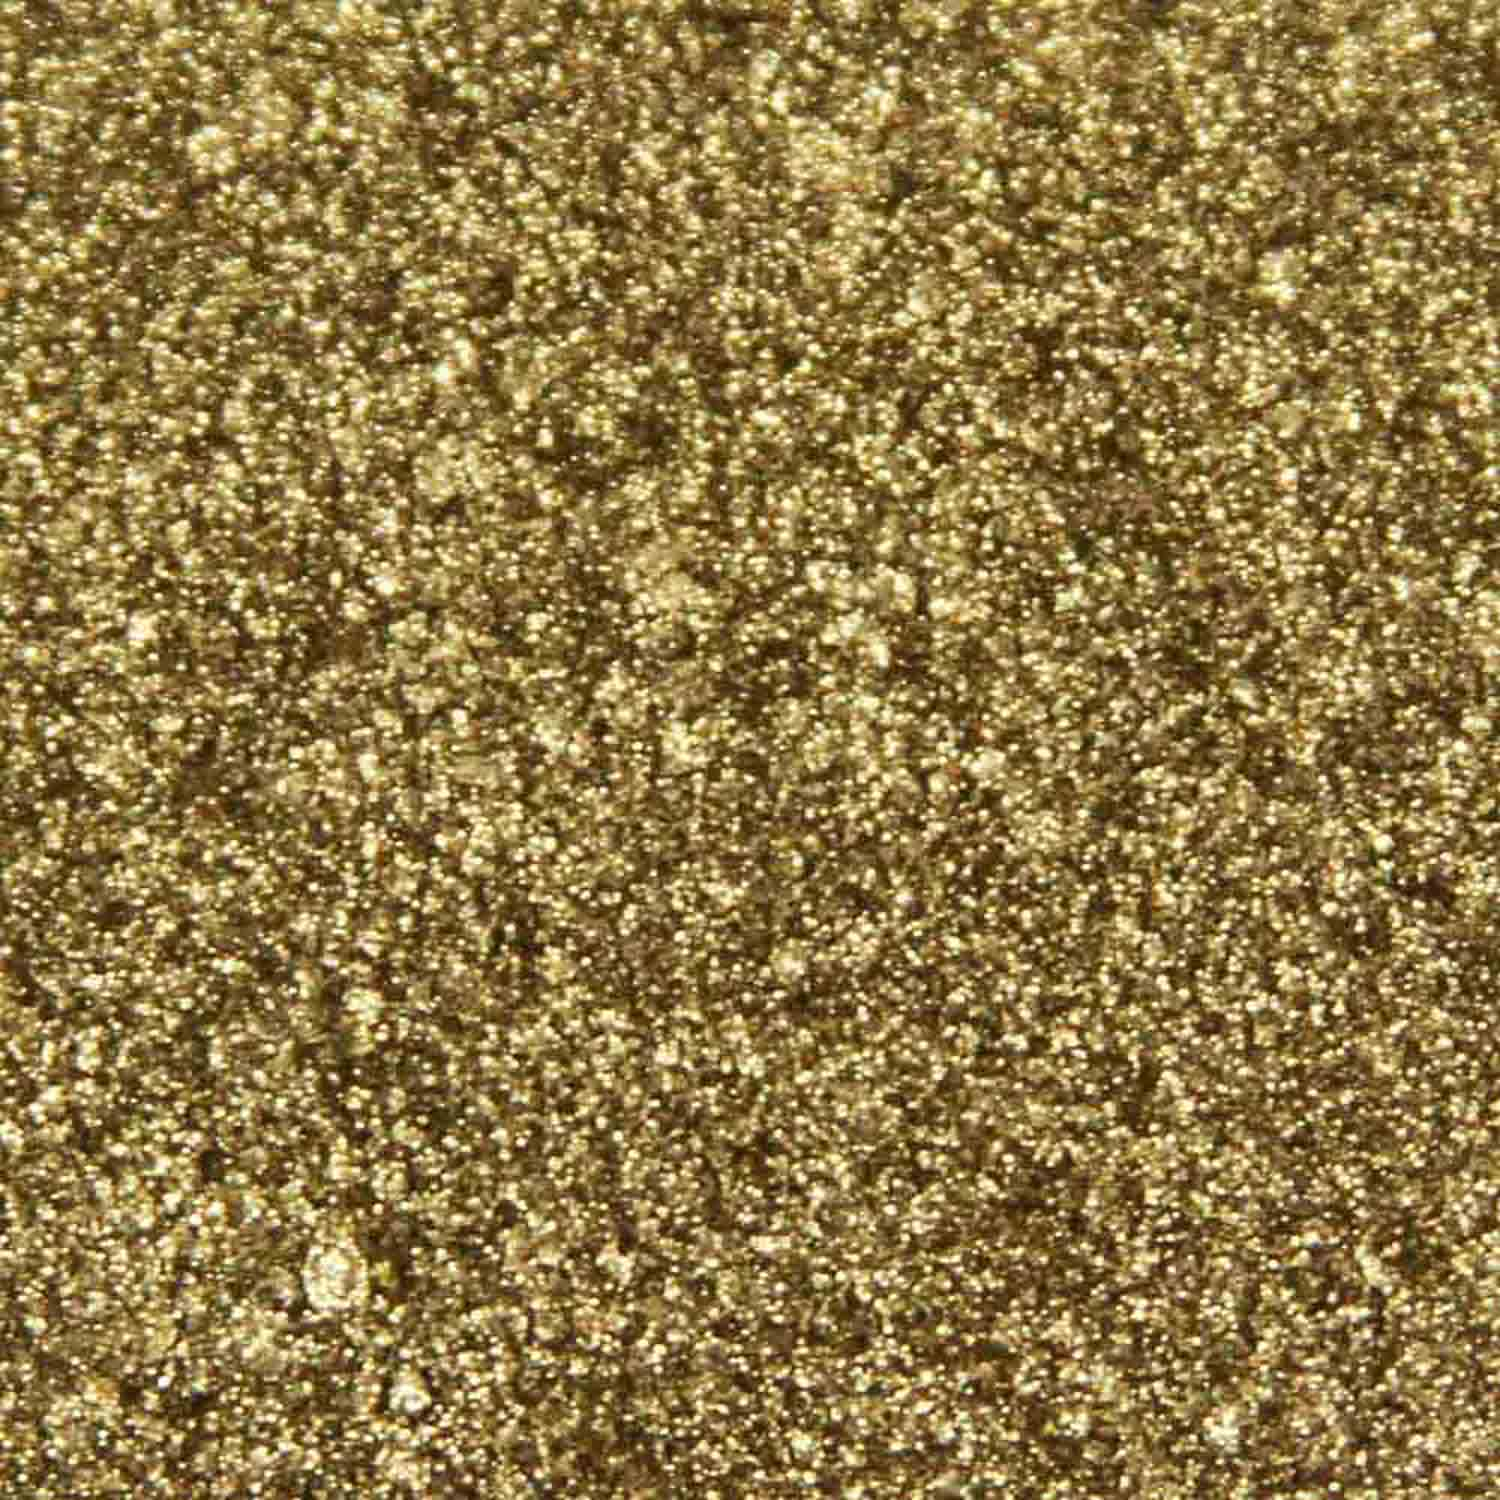 Imperial Metallic Gold Dust